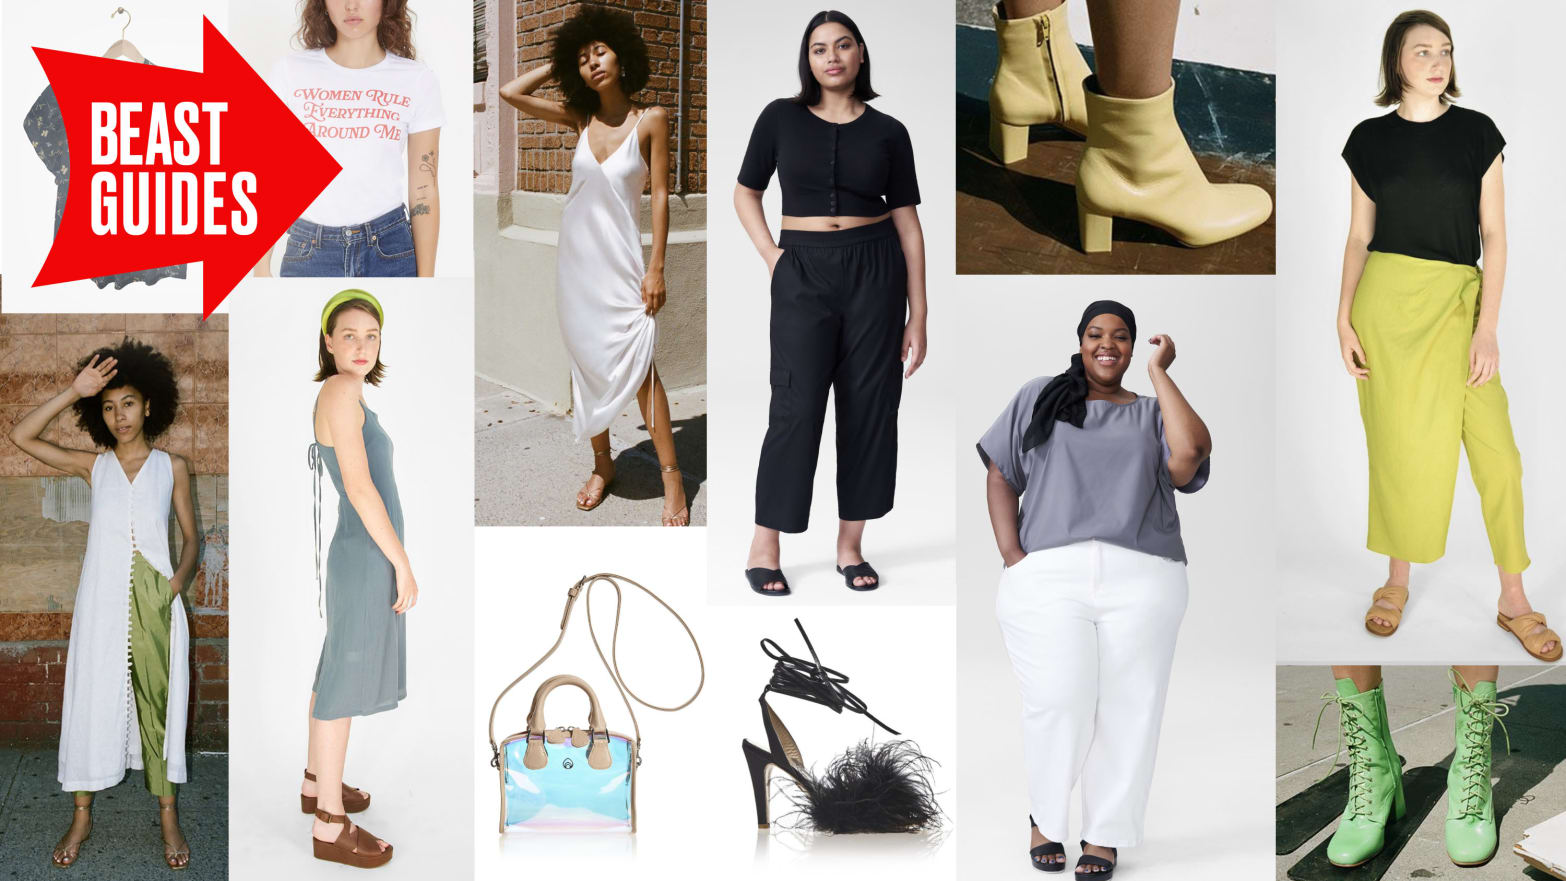 659bcdd6 The 10 Best Woman-Owned Clothing Stores in New York City